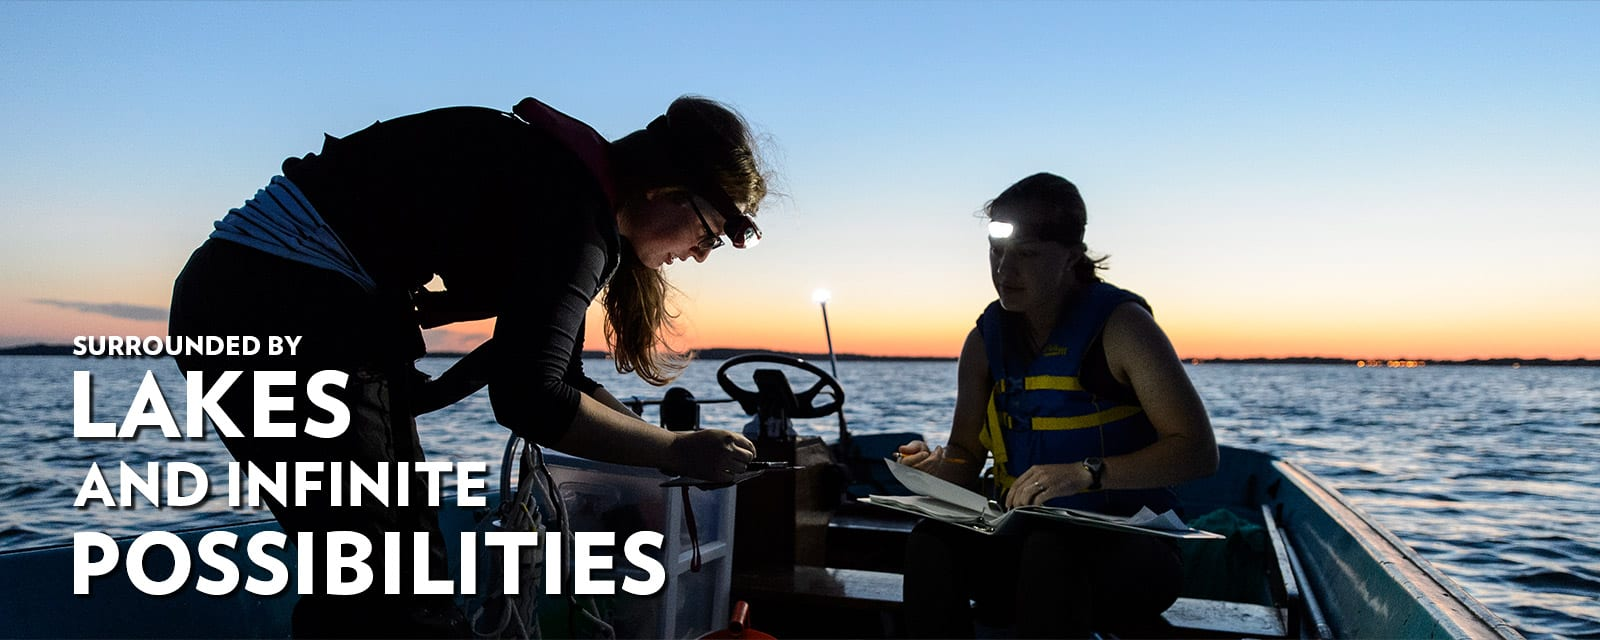 Two students doing research on a small boat at dawn with the words surrounded by lakes and infinite possibilities